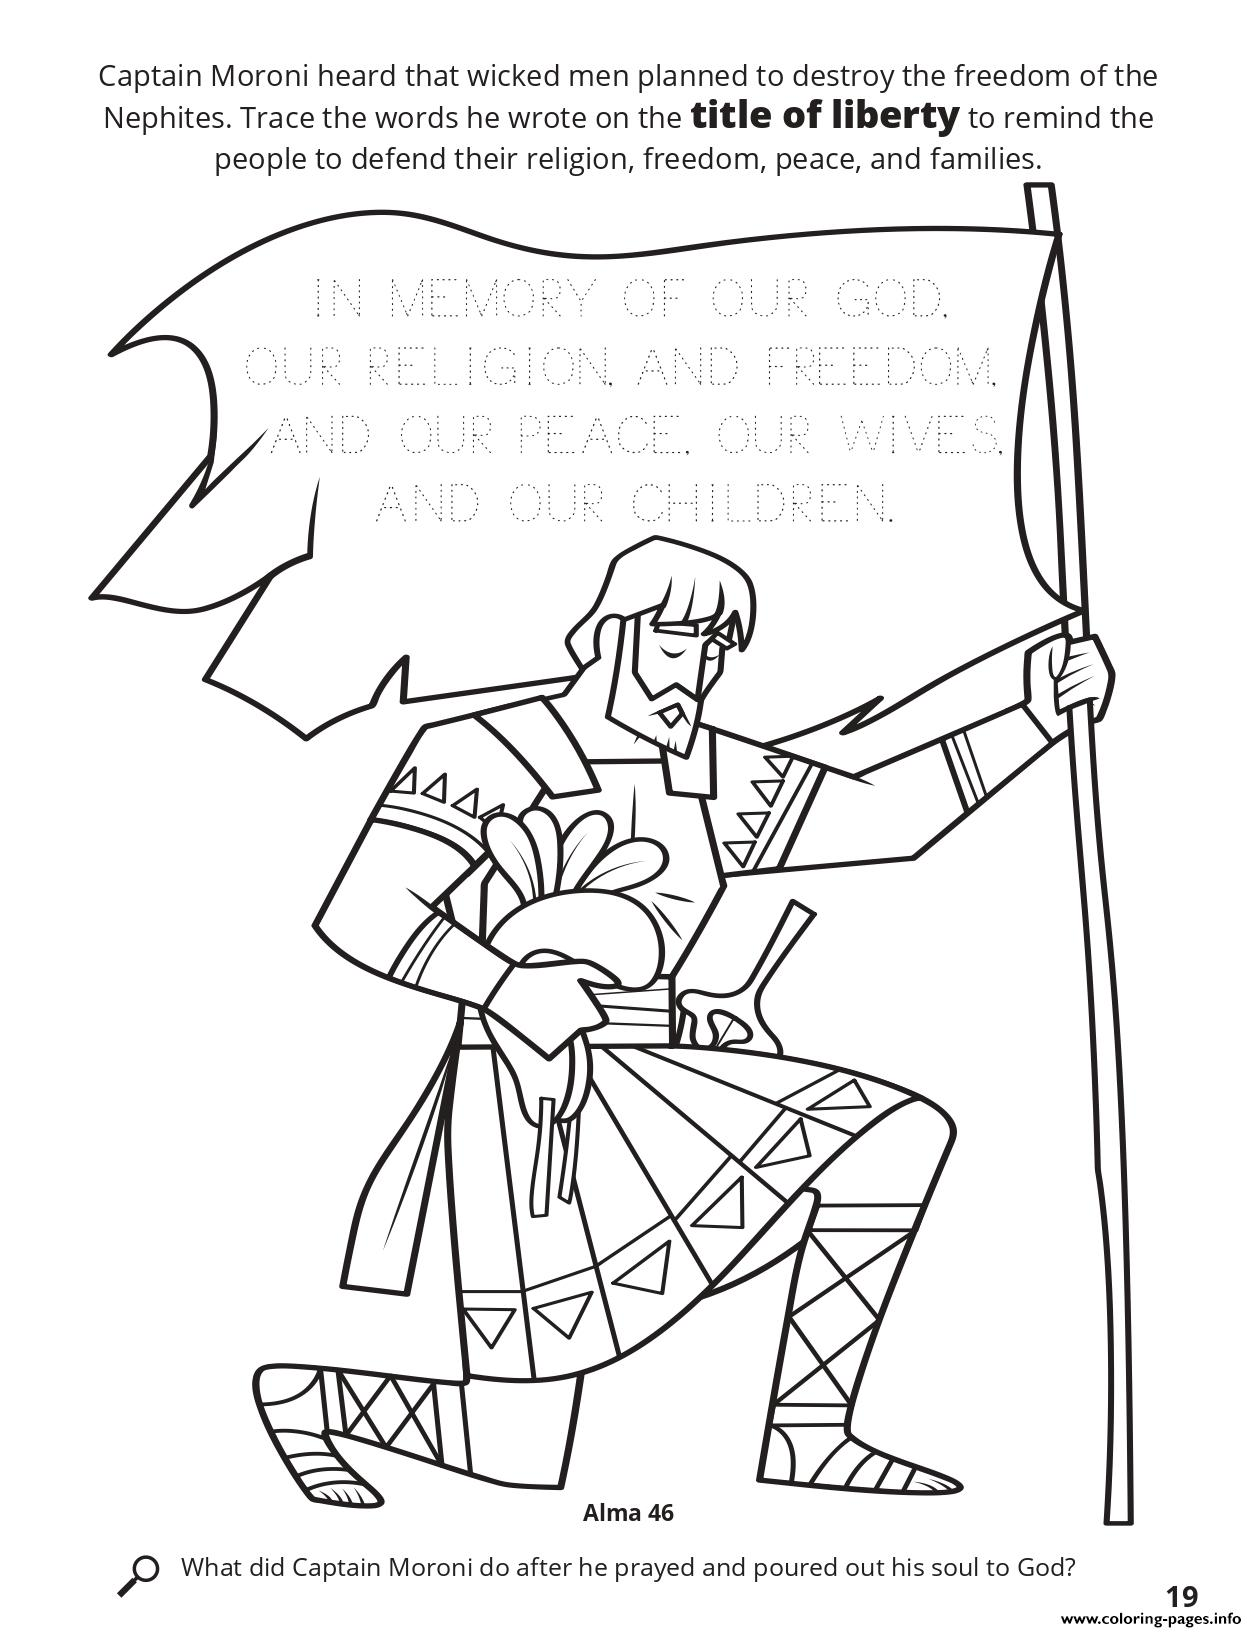 Trace The Words He Wrote On The Title Of Liberty To Remind The People To Defend Their Religion coloring pages